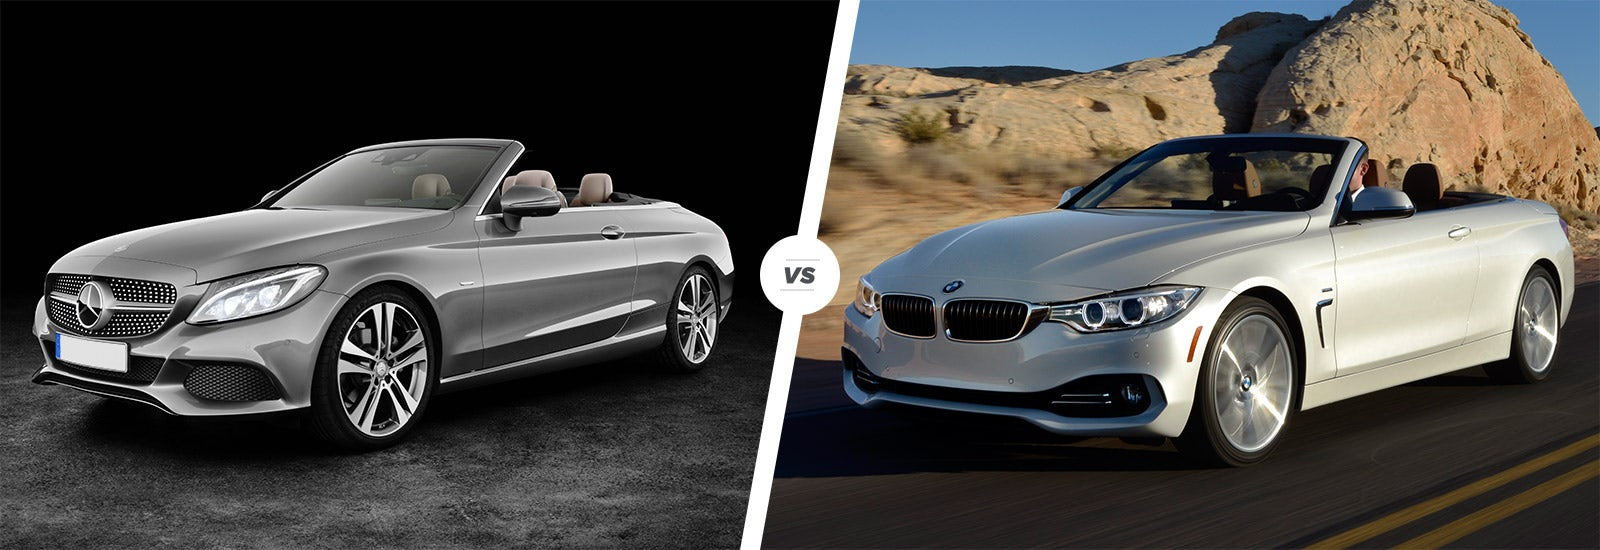 mercedes c class cabriolet vs bmw 4 series convertible. Black Bedroom Furniture Sets. Home Design Ideas